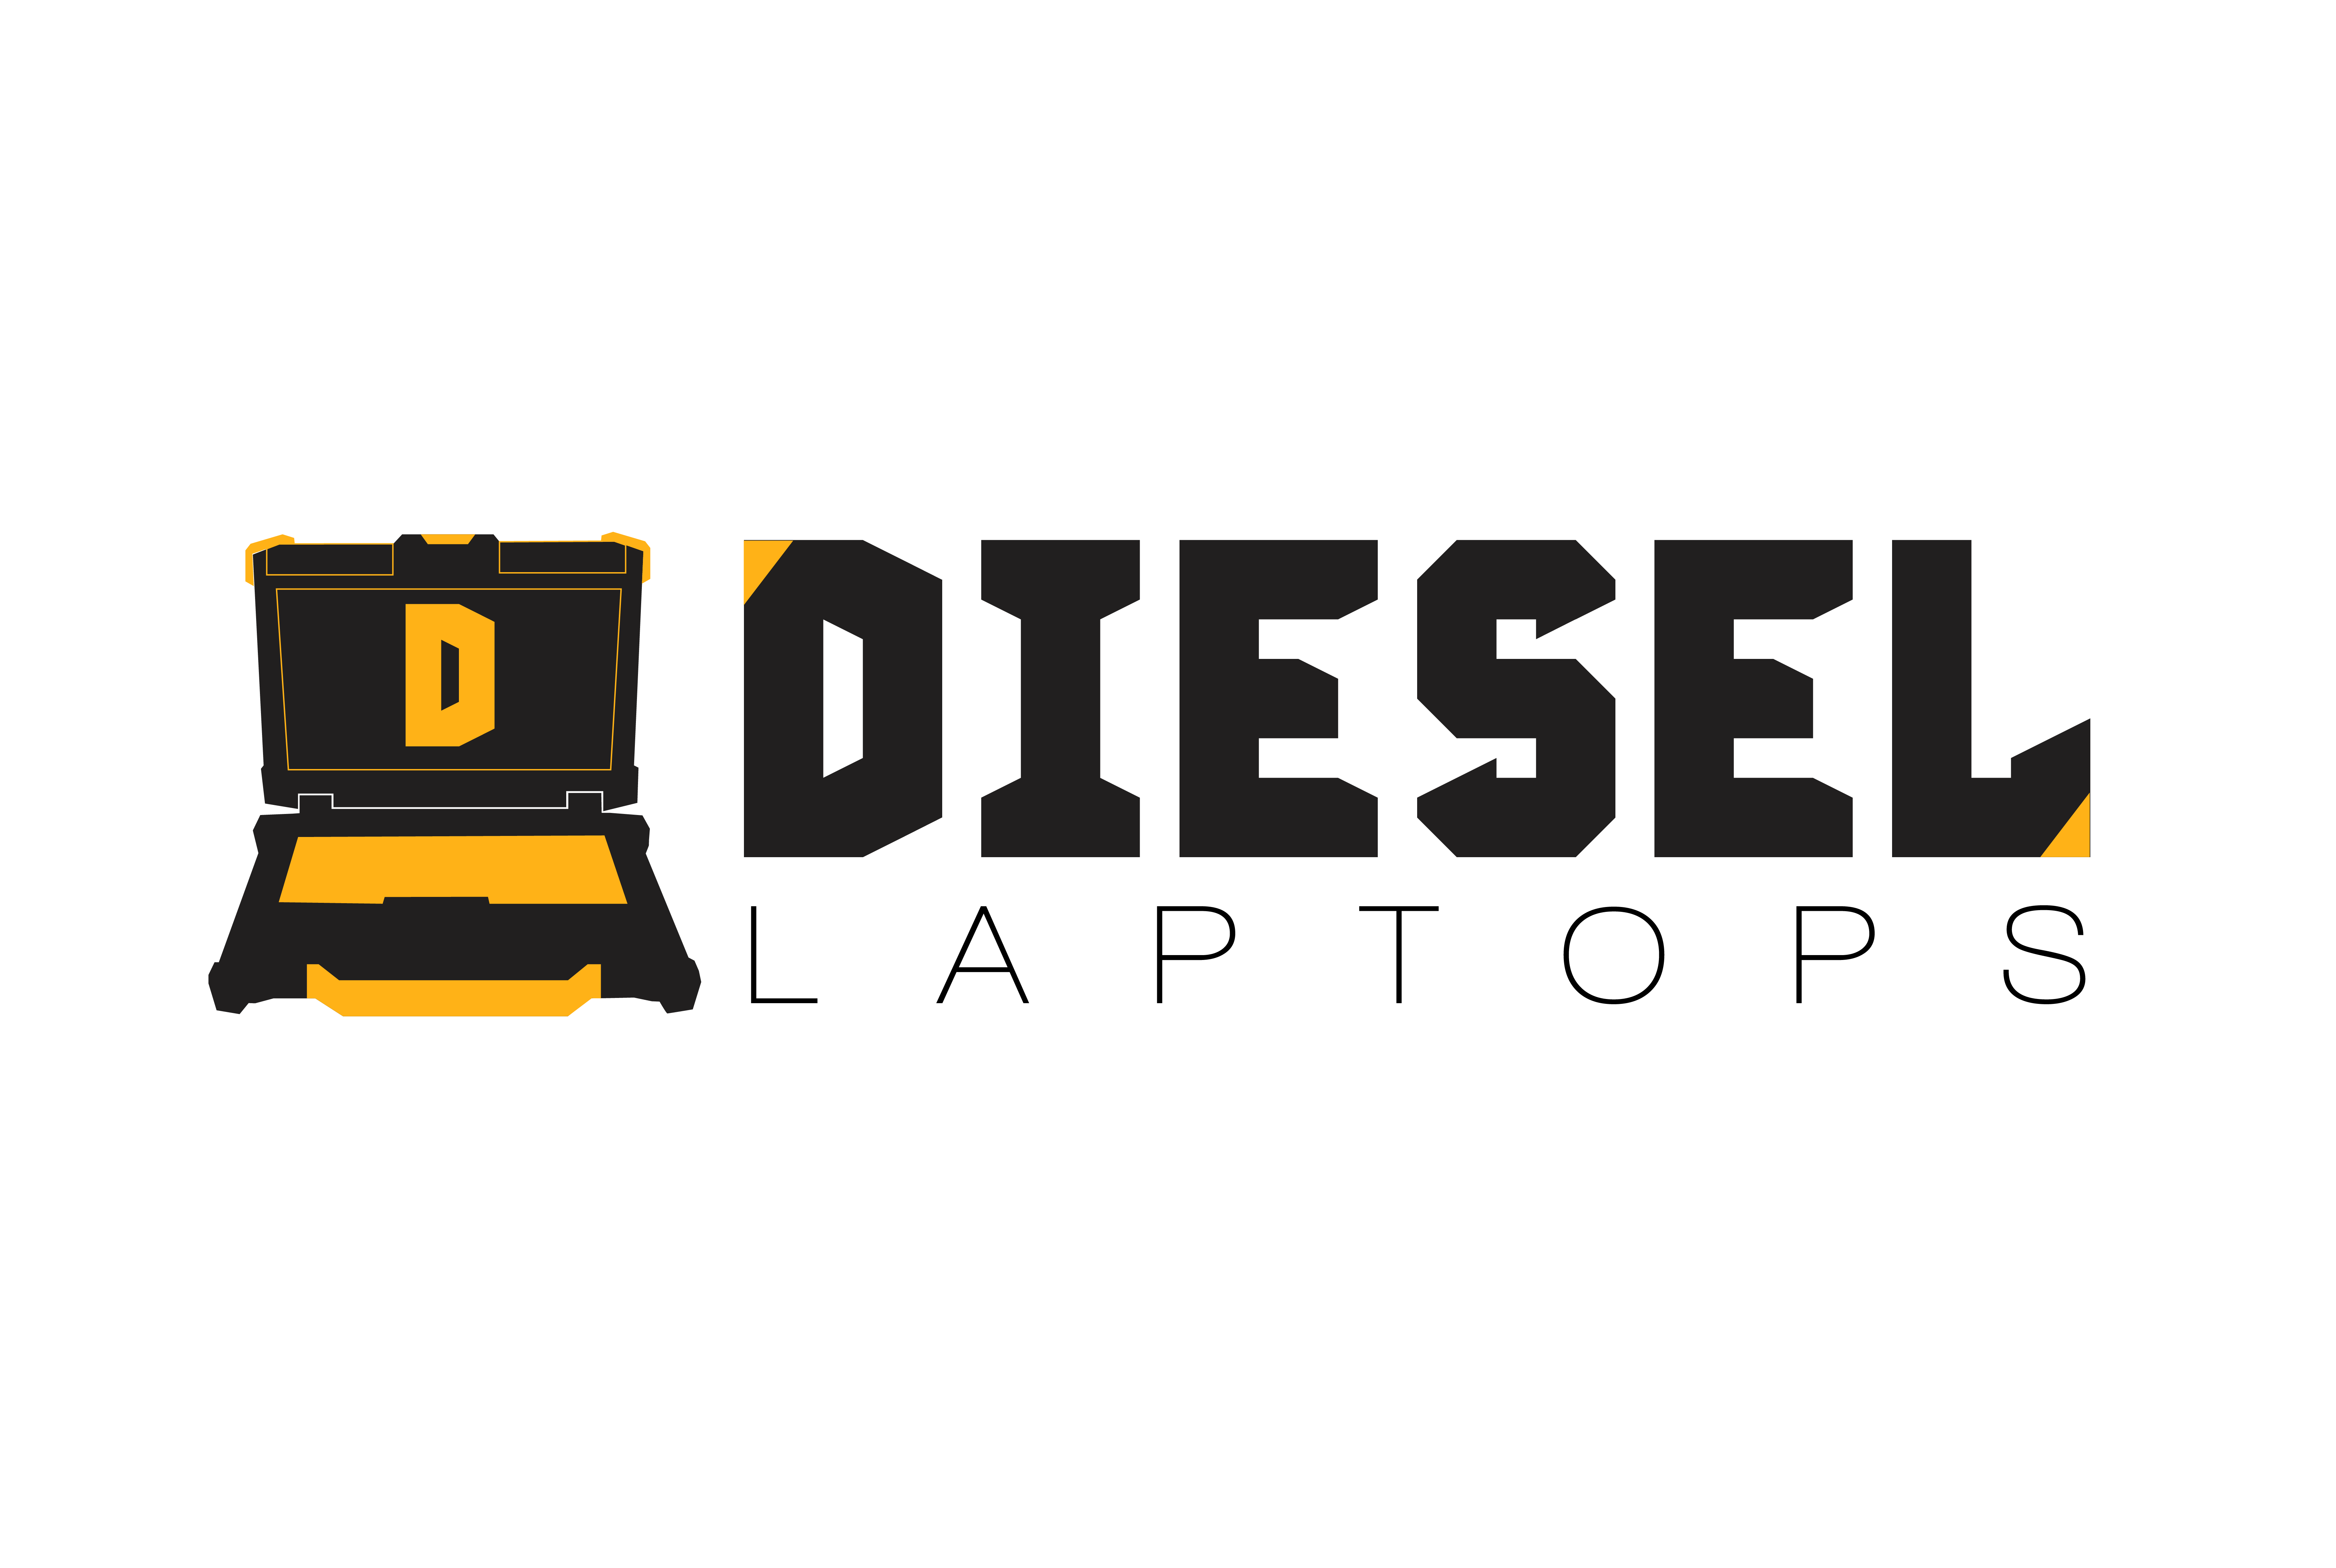 Diesel Laptops Announces Office Relocation and Ribbon Cutting